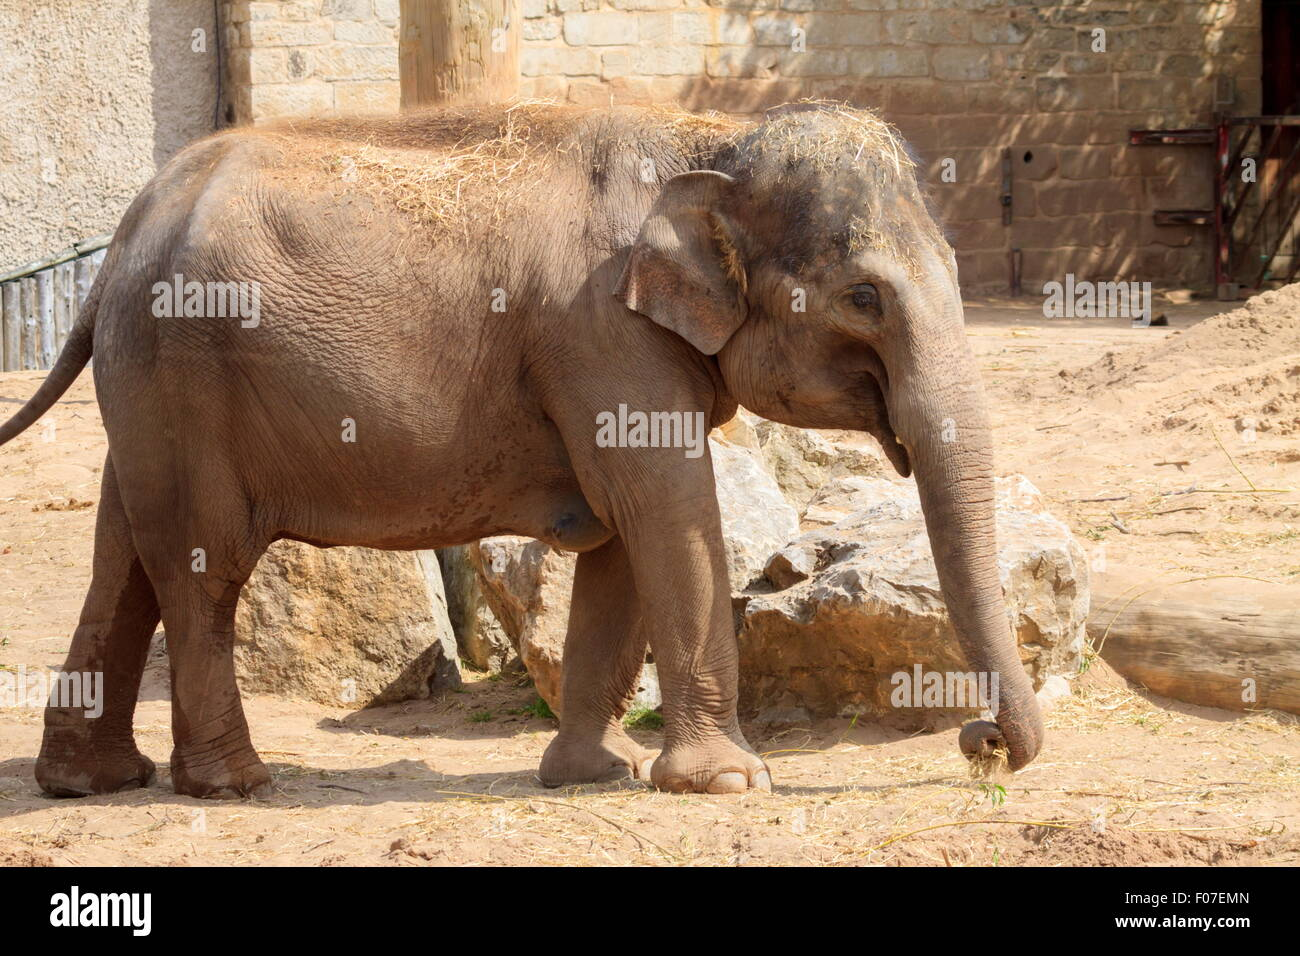 Young elephant at Chester Zoo - Stock Image